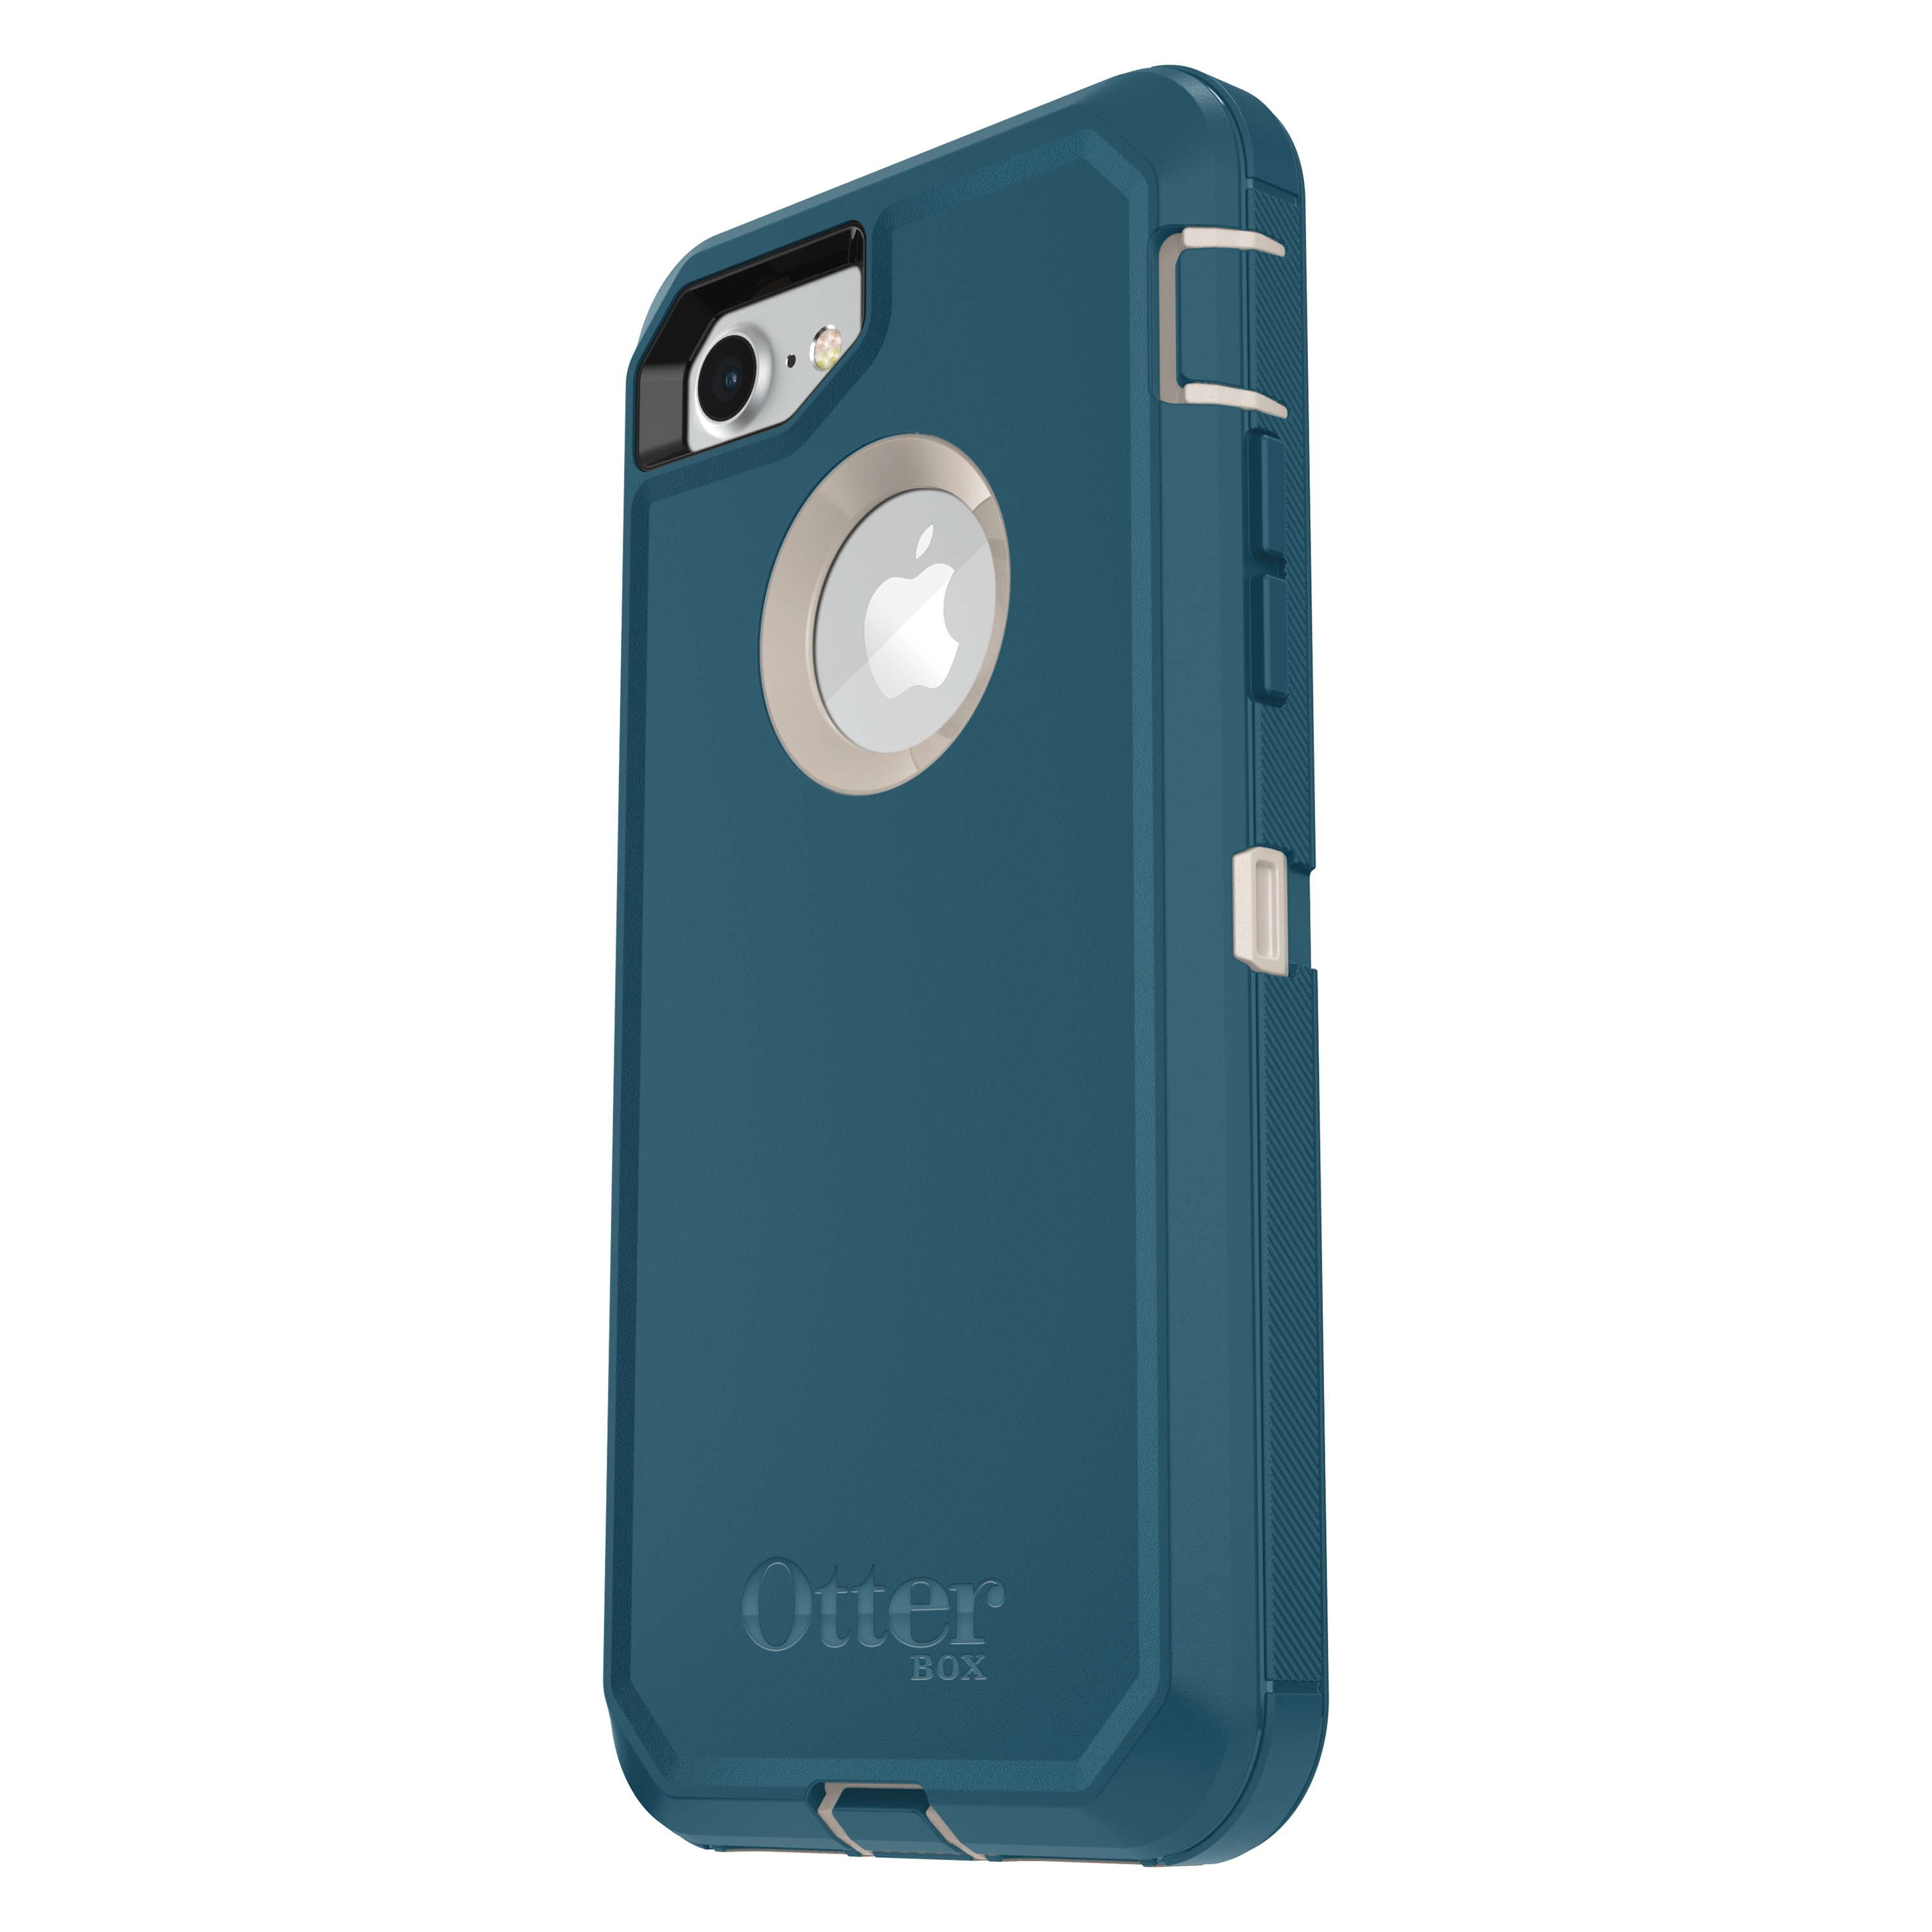 OtterBox protective phone case